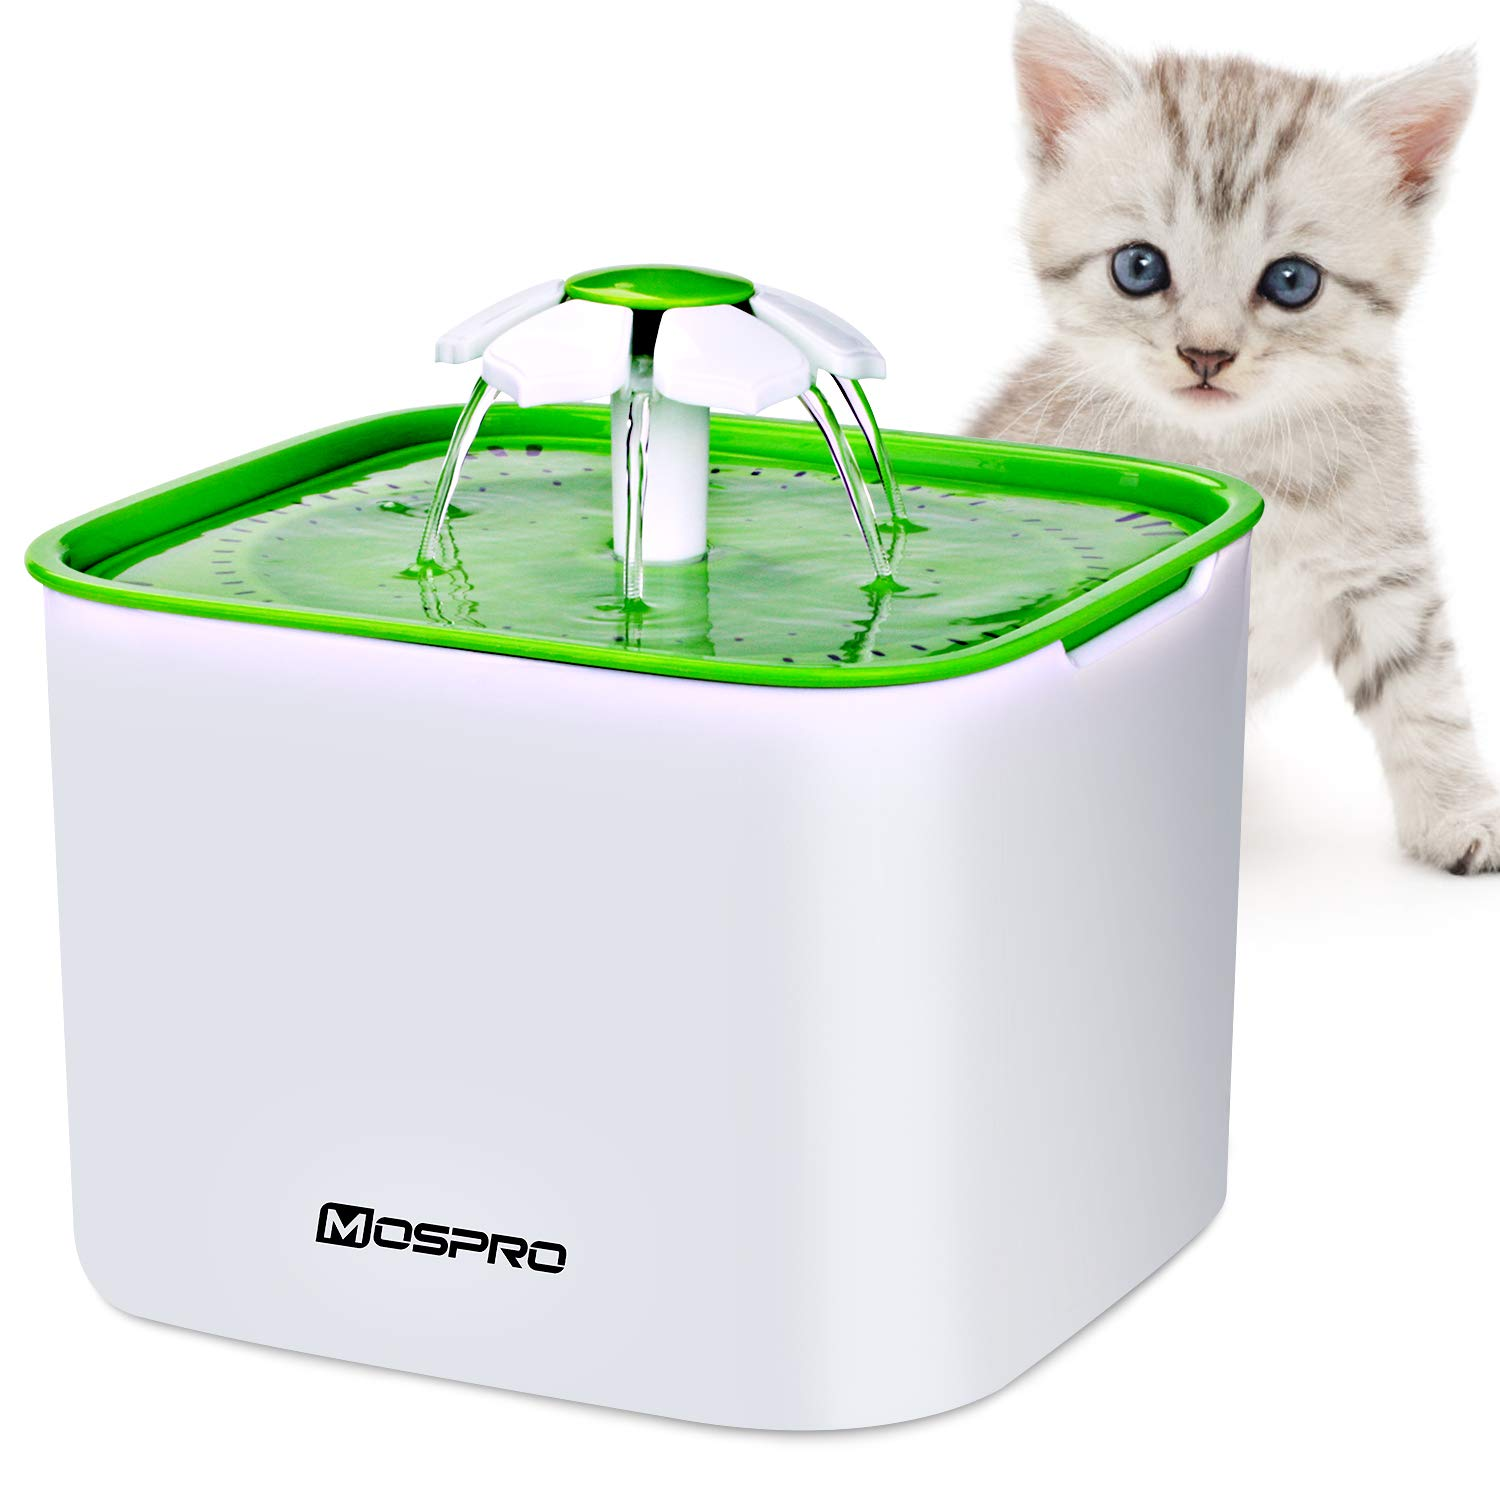 Pet Fountain Cat Water Dispenser - Flower Drinking Fountain 2L Ultra Quiet Automatic Electric Water Bowl with 2 Filters for Cats Dogs Birds and Small Animals Health Caring and Hygienic